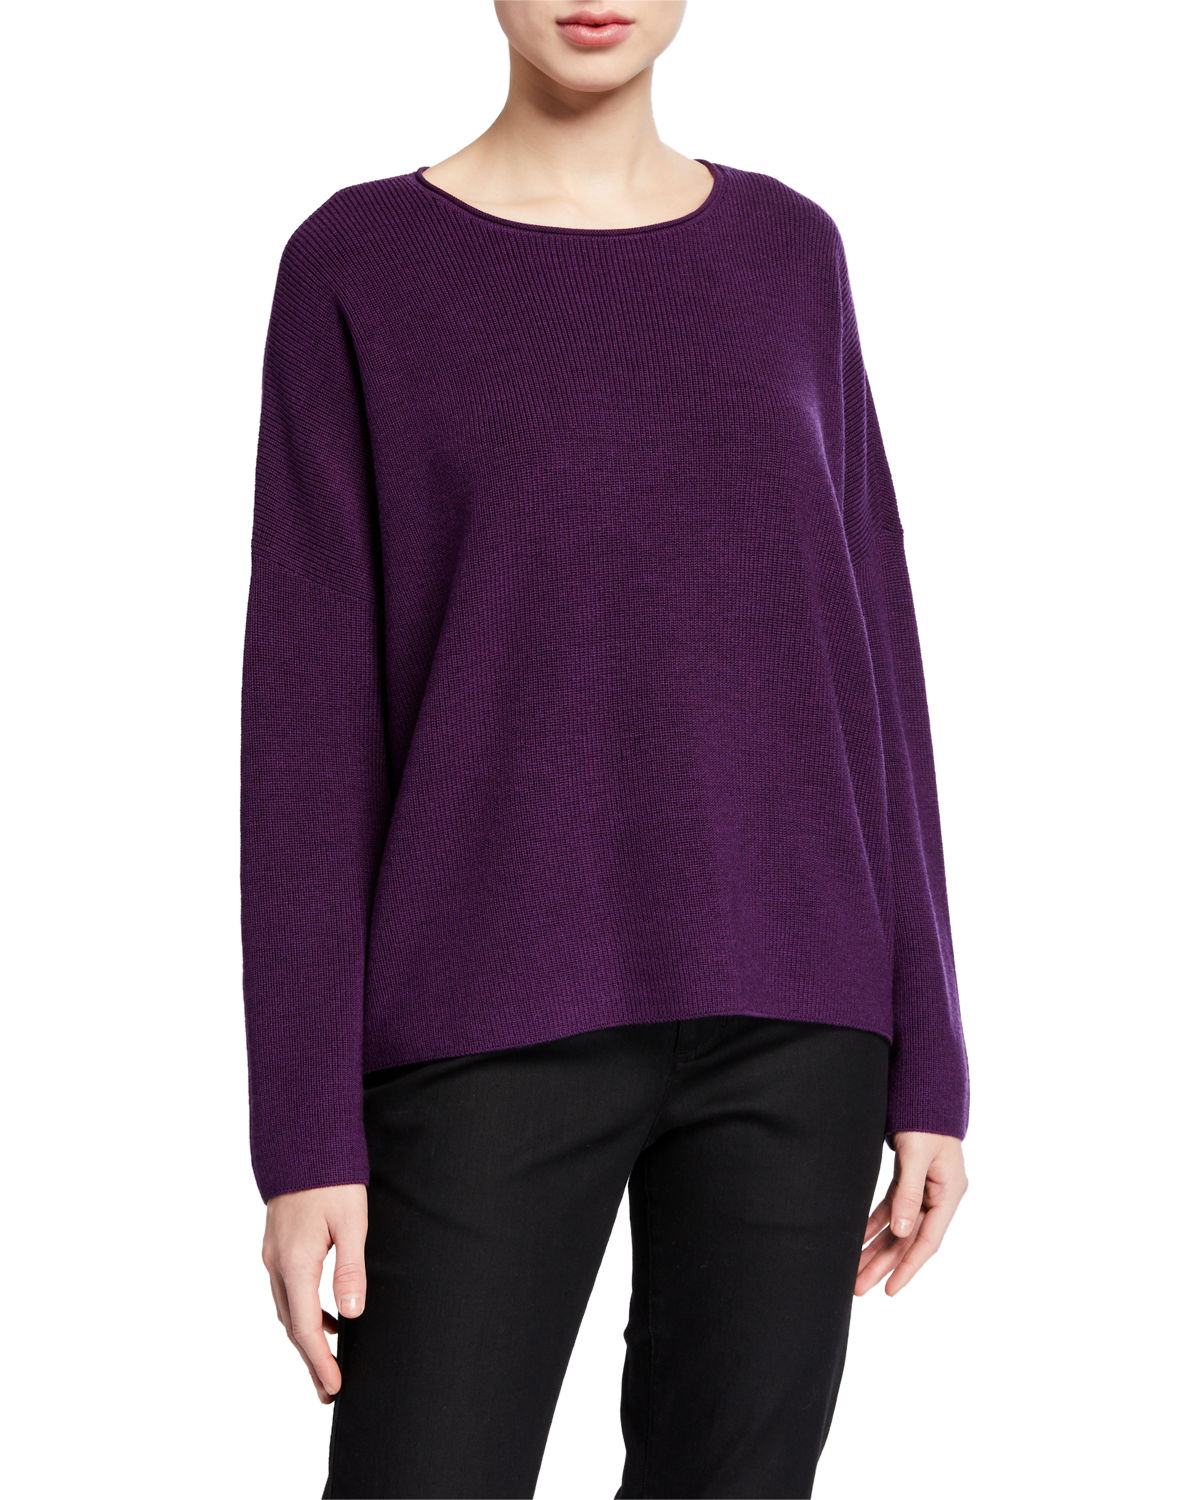 Eileen Fisher Wools PLUS SIZE BOXY FINE MERINO WOOL RIBBED SWEATER